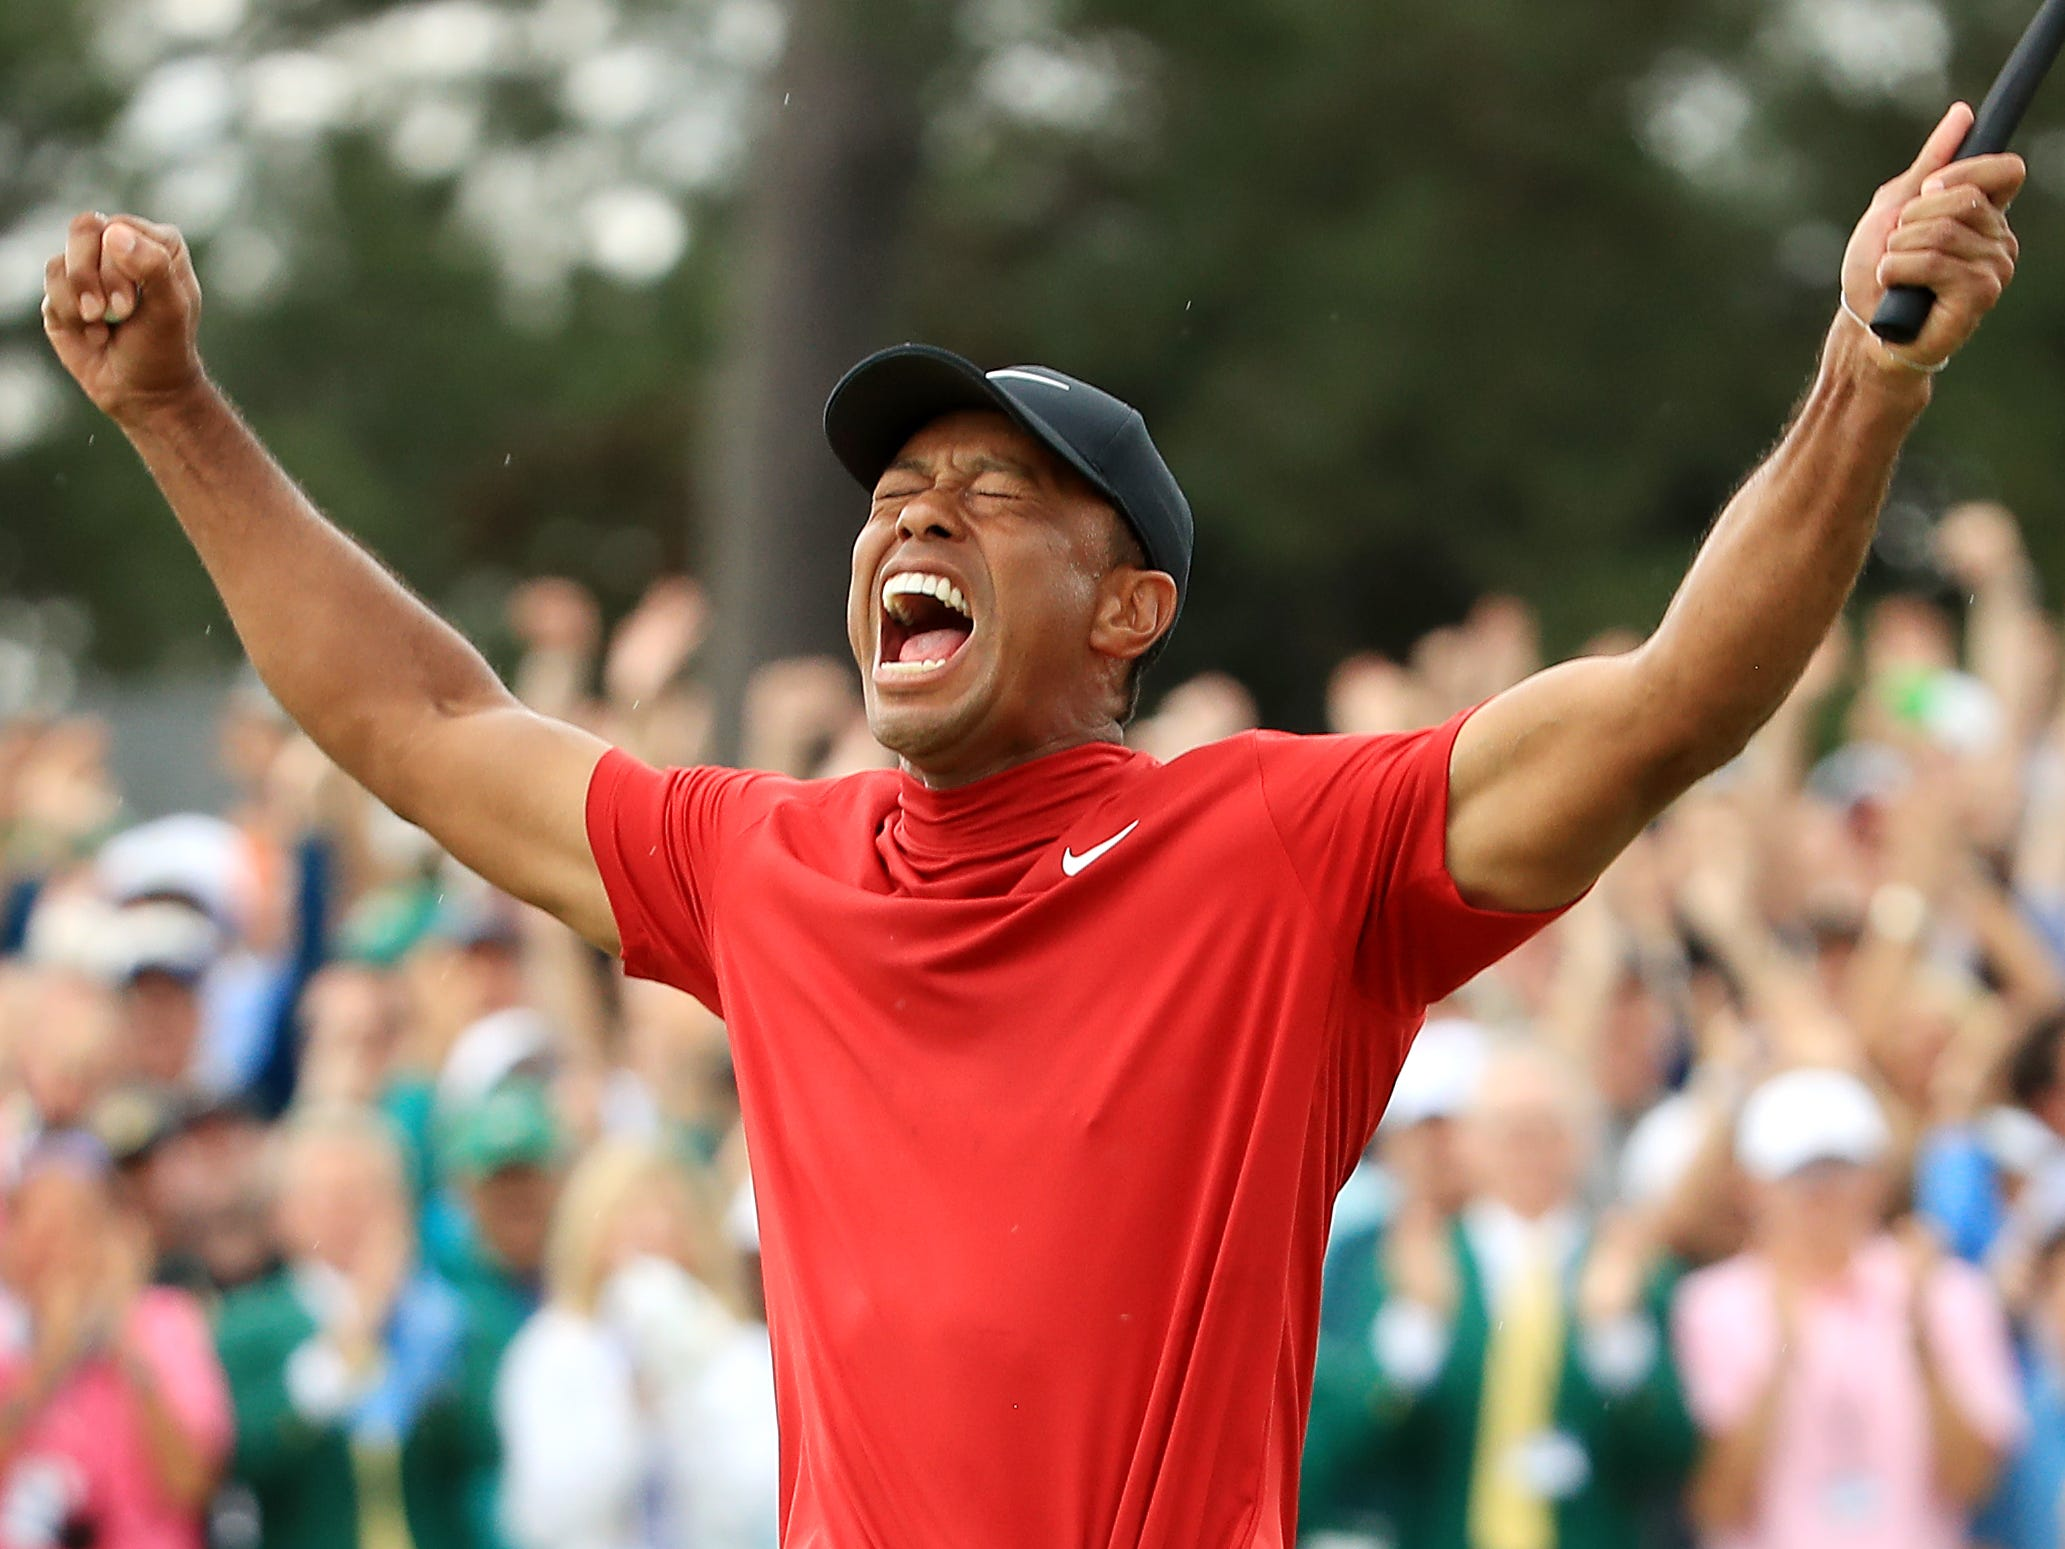 Tiger Woods of the United States celebrates after sinking his putt on the 18th green.